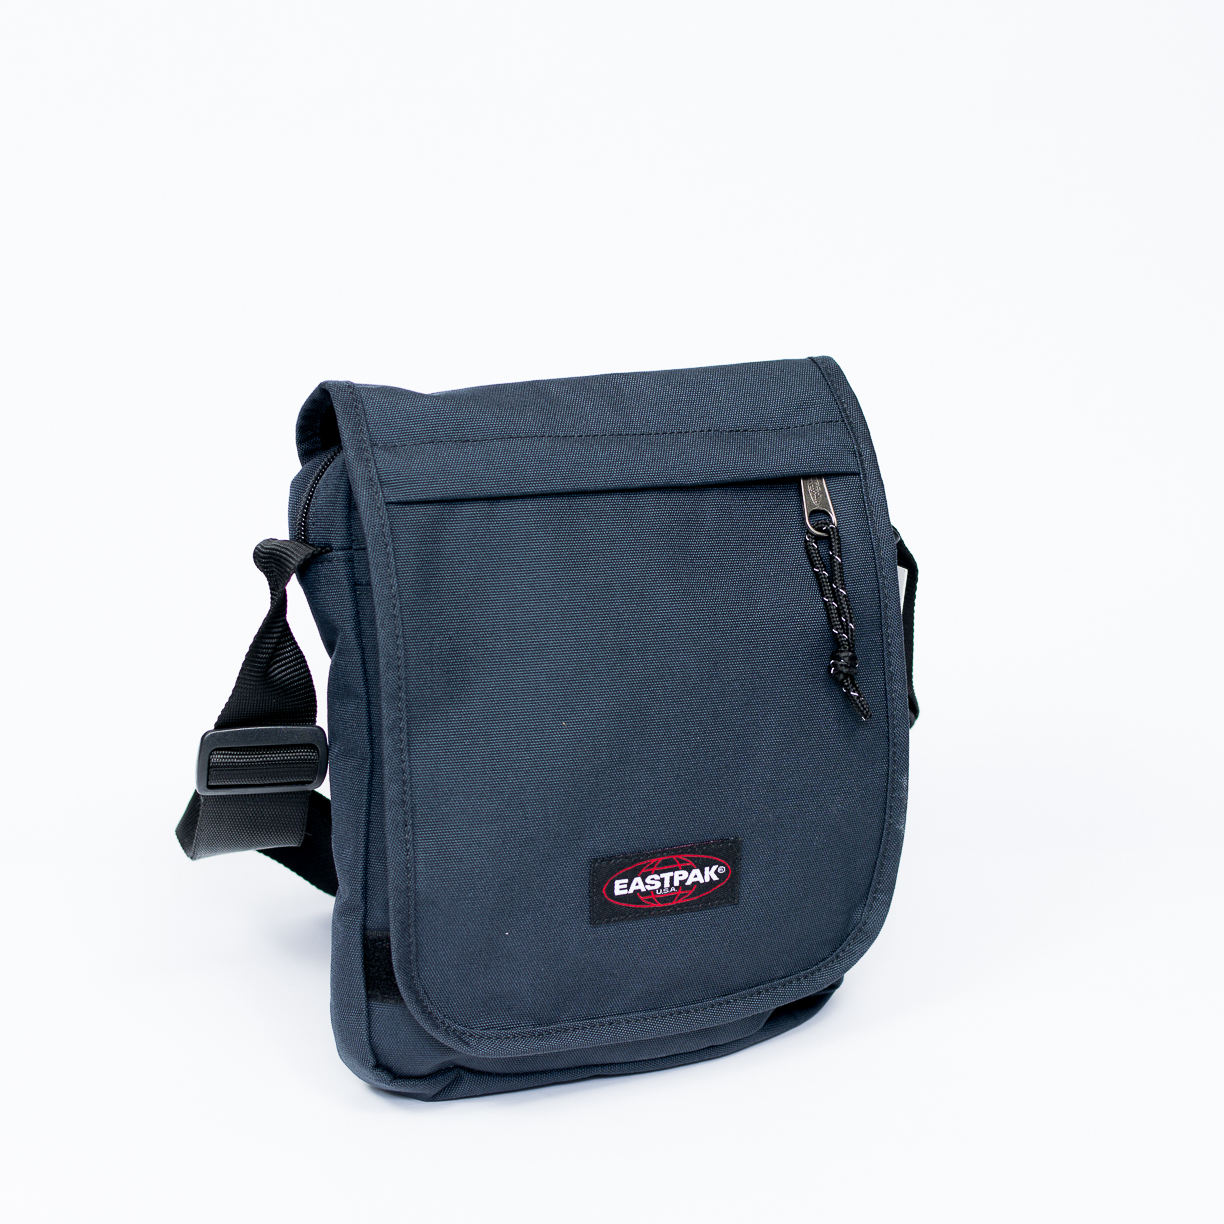 BORSELLO EASTPAK FLEX ANTRACE